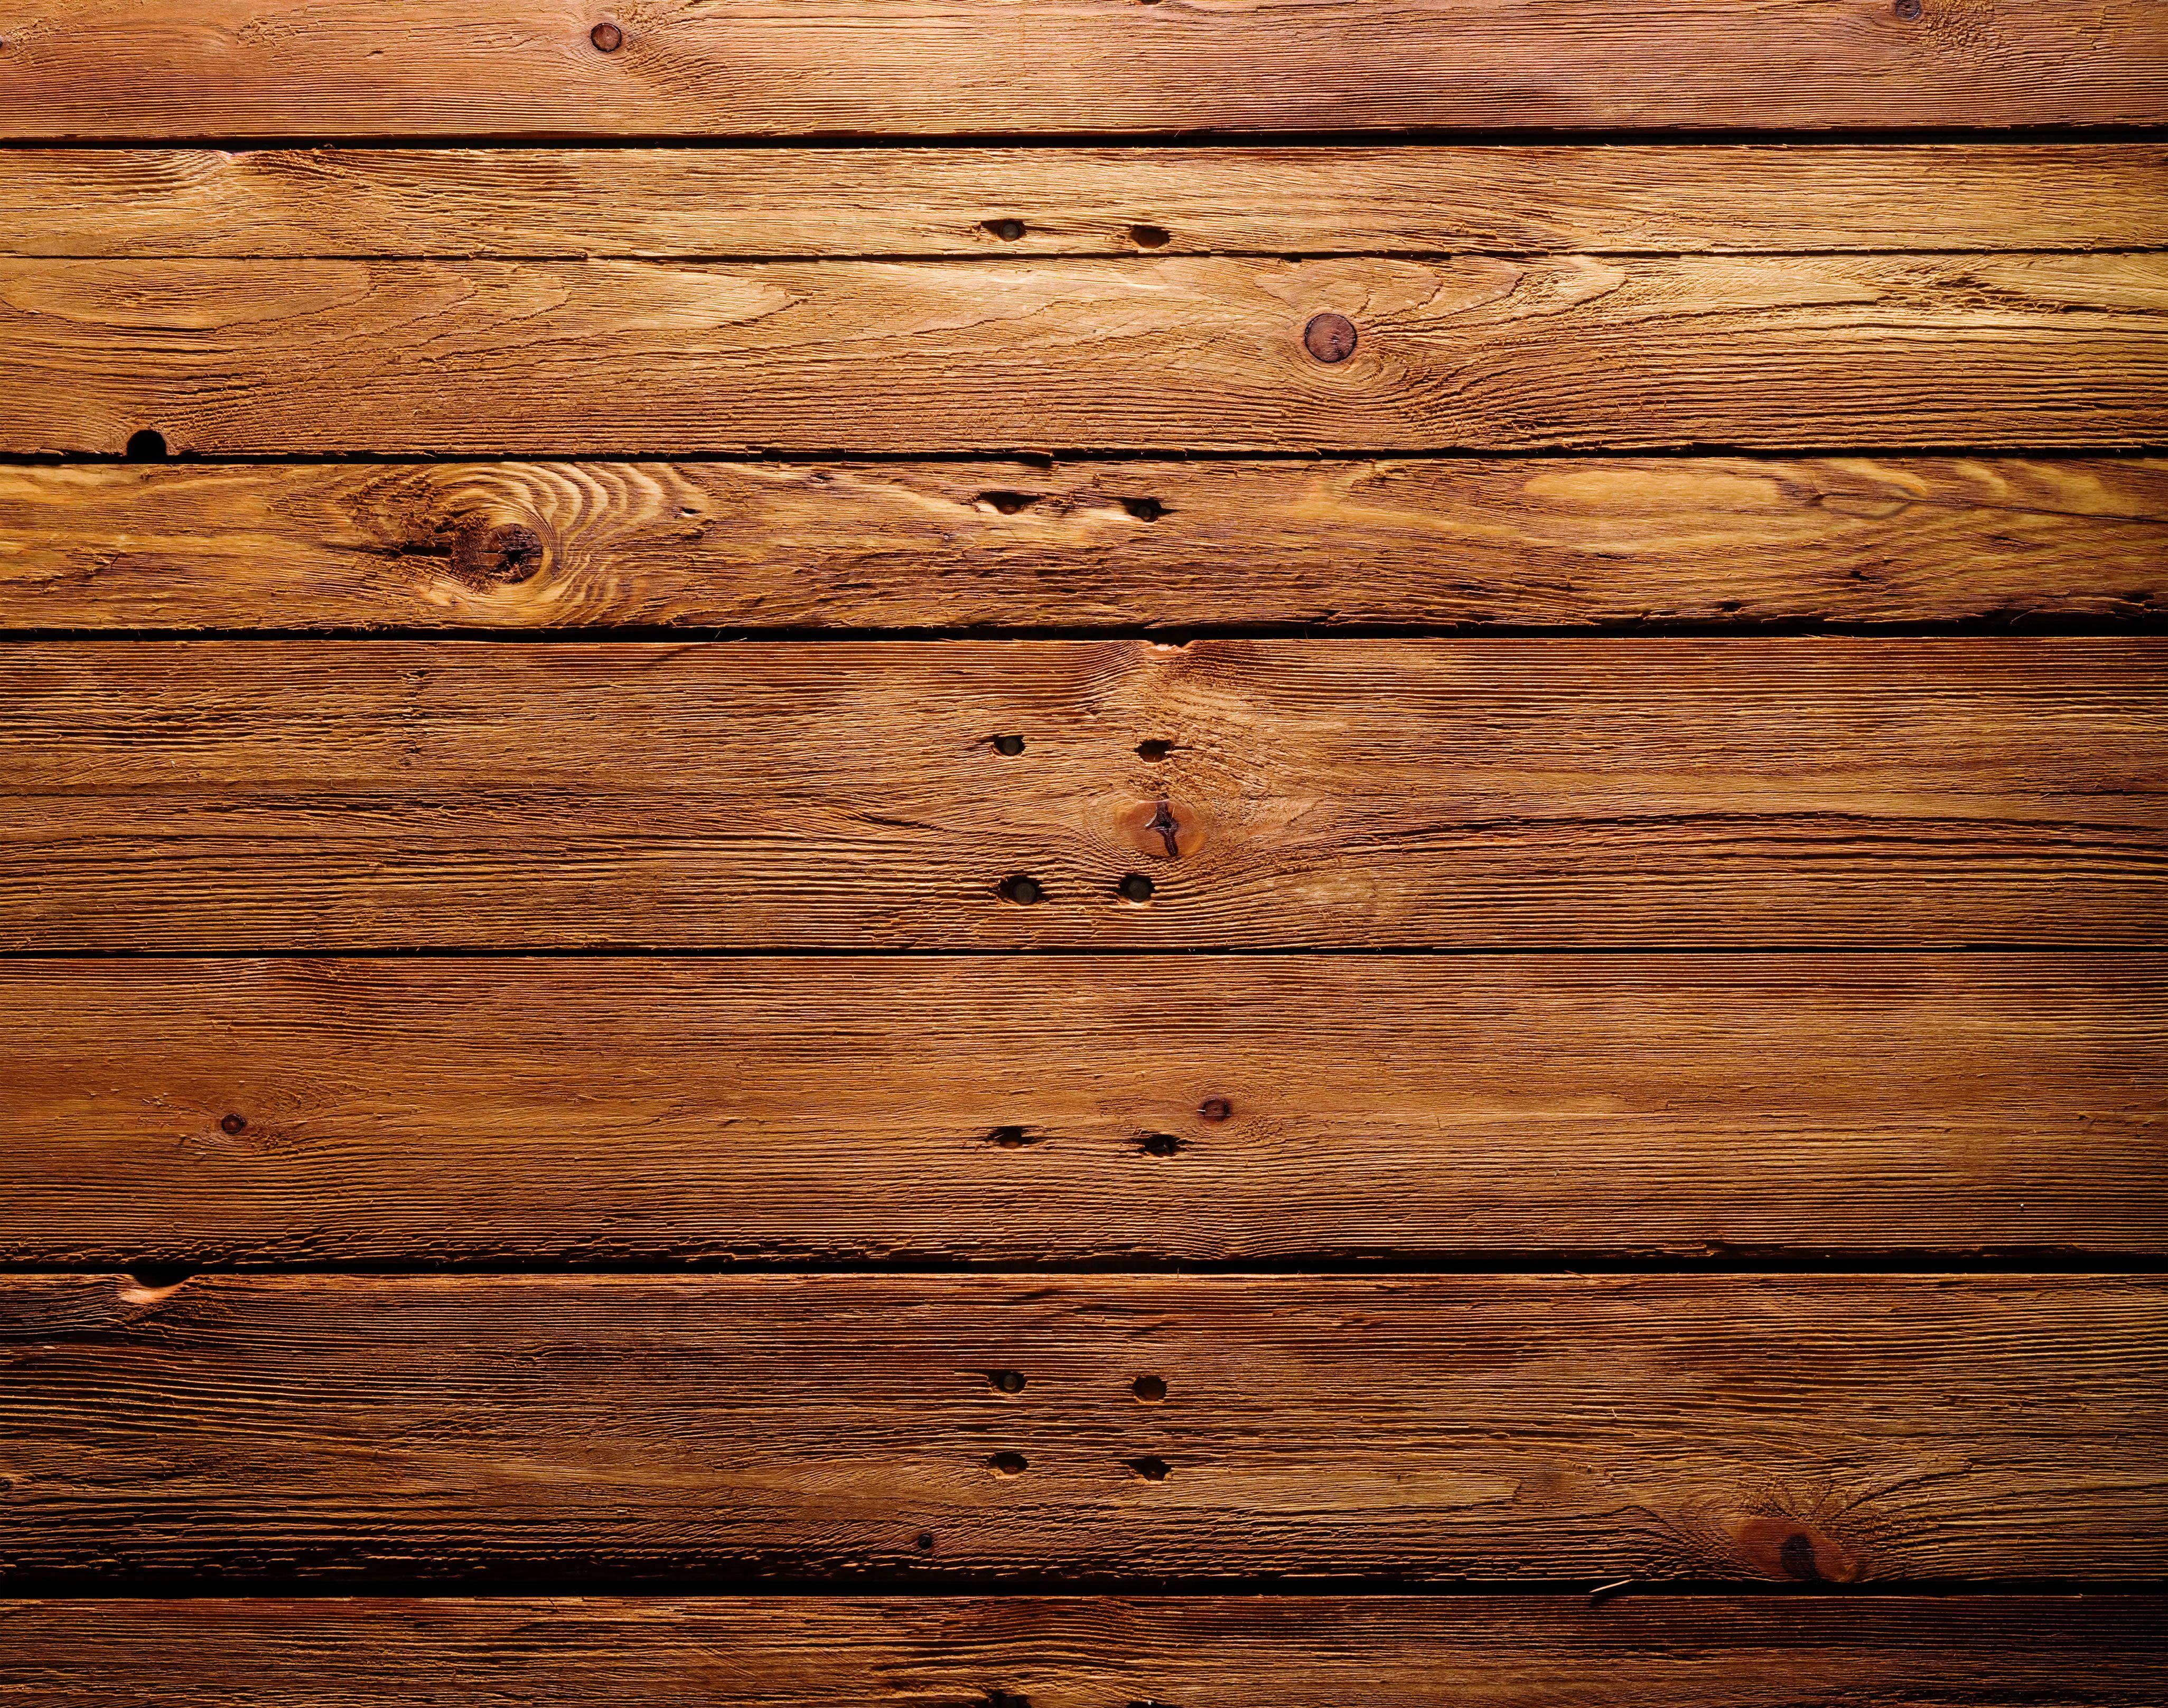 Wooden Background Two | Photo Texture & Background